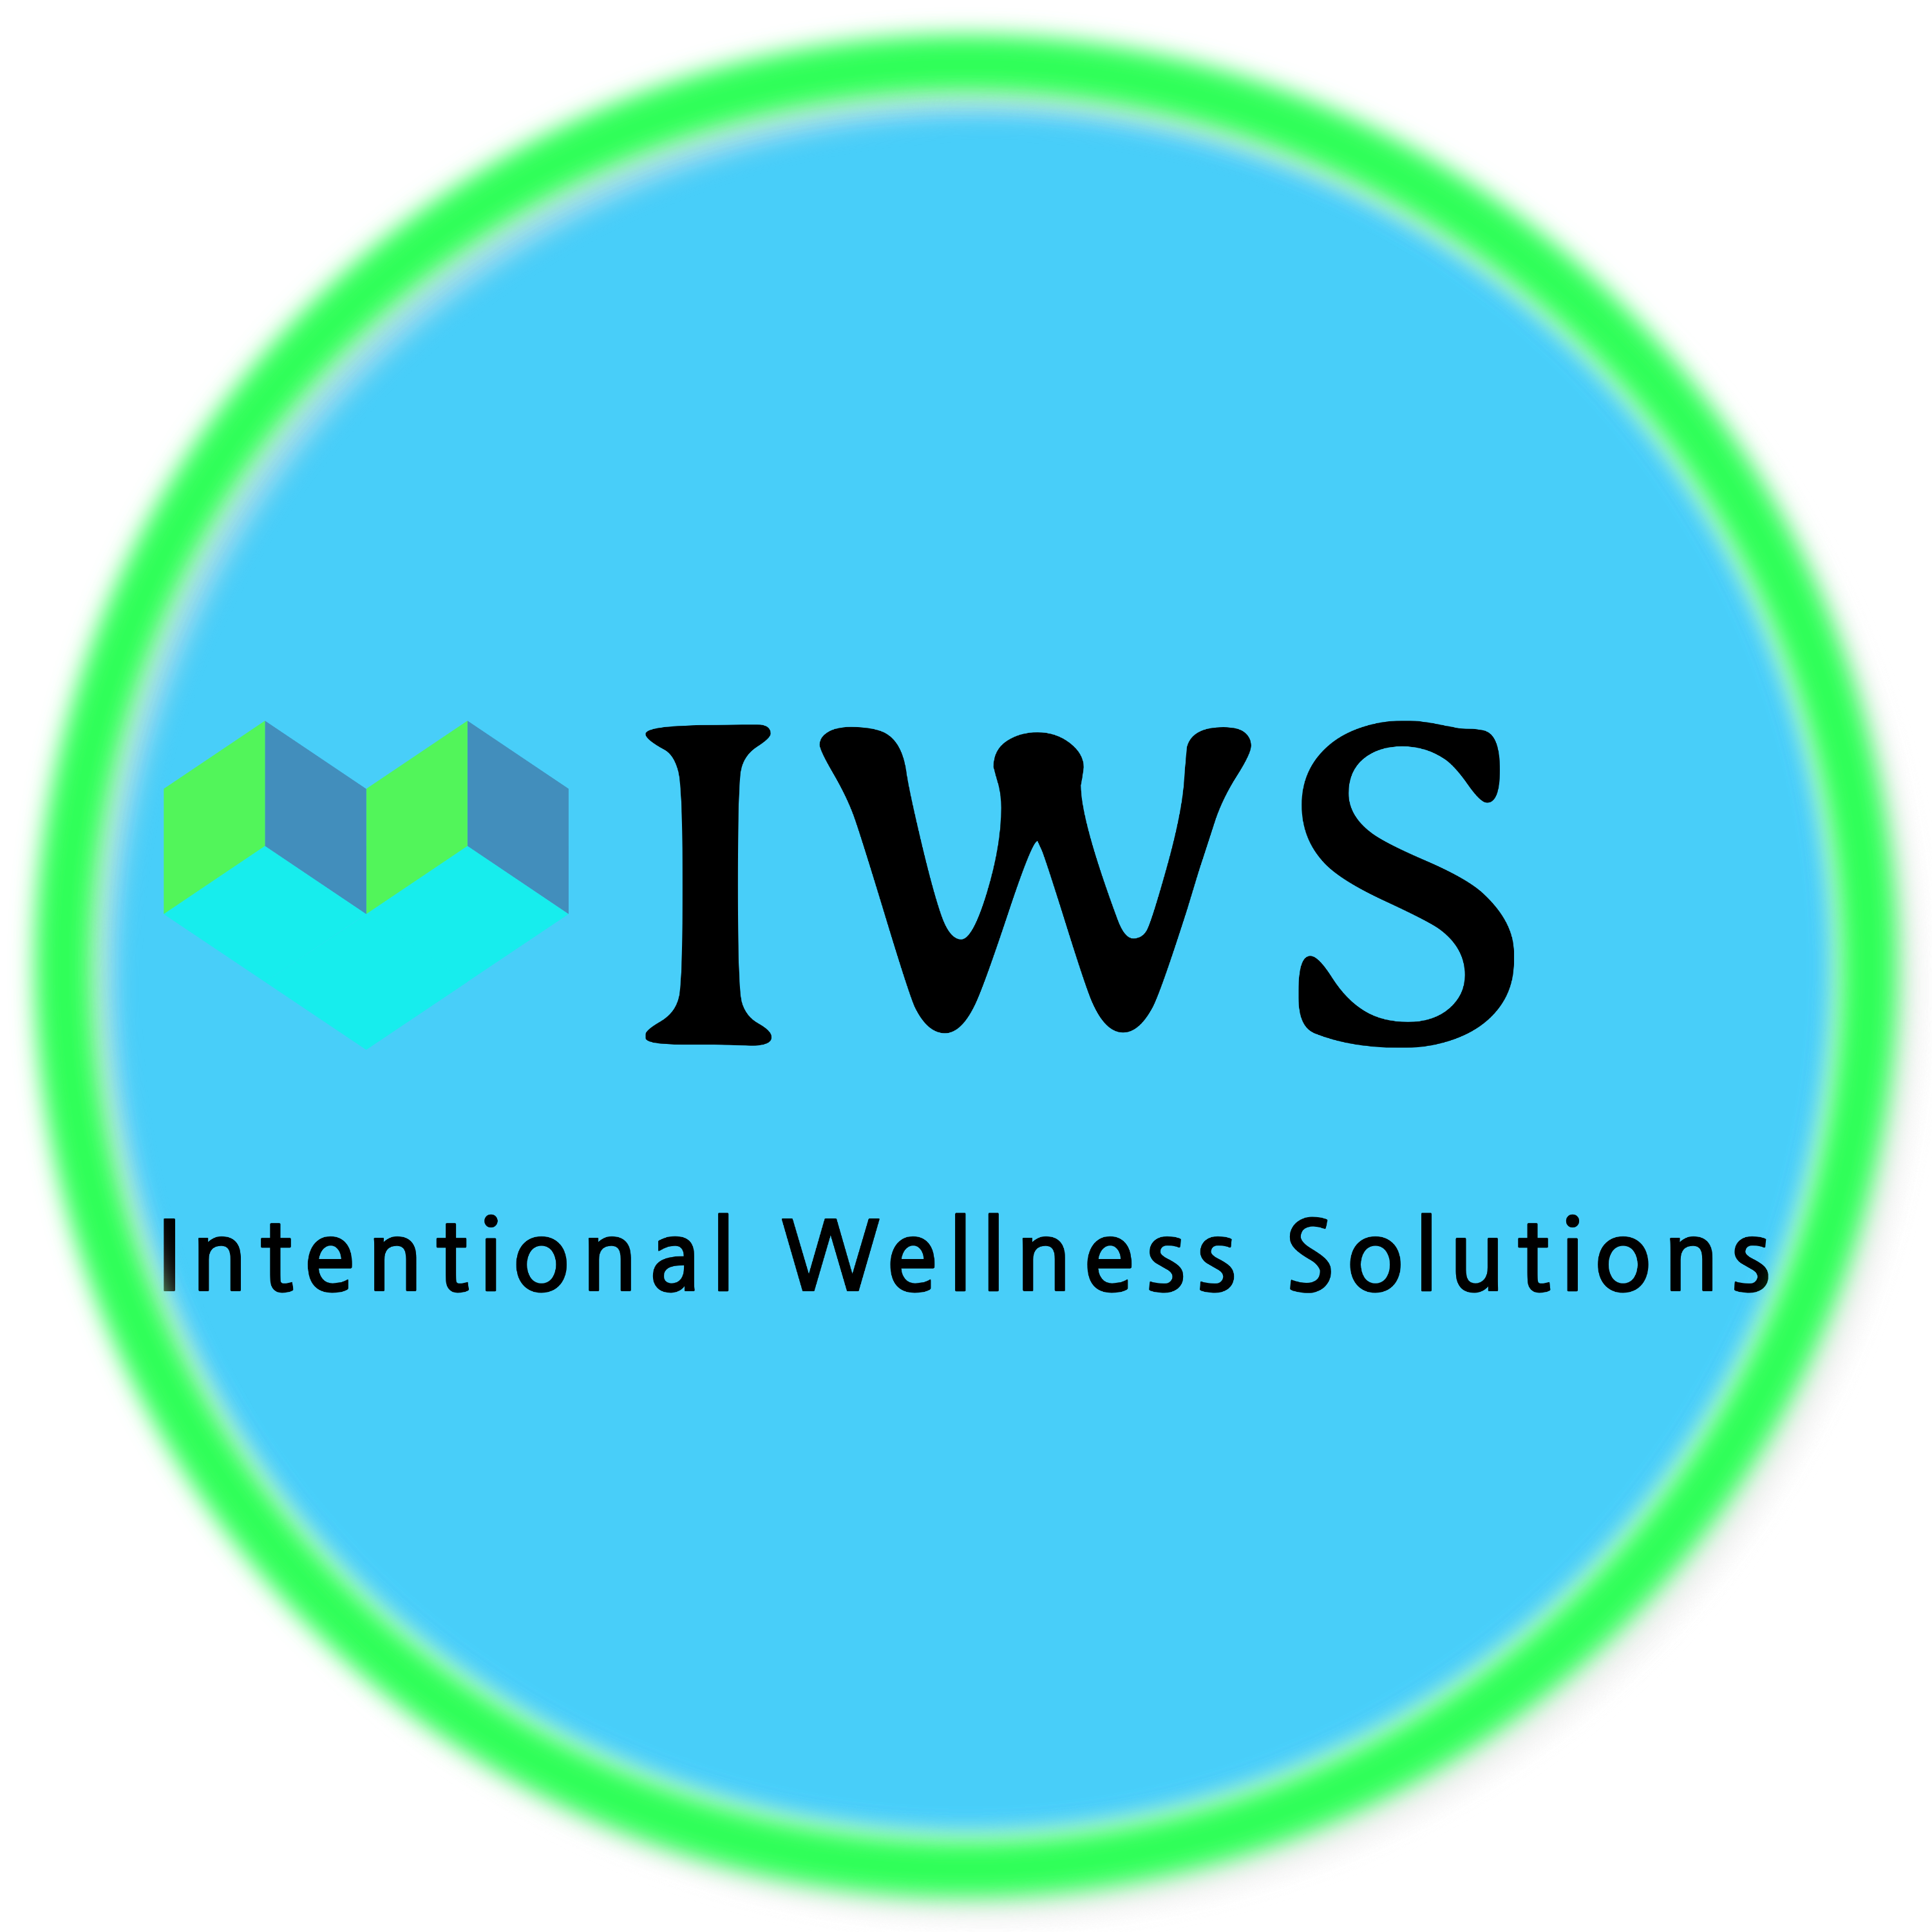 intentional wellness solutions